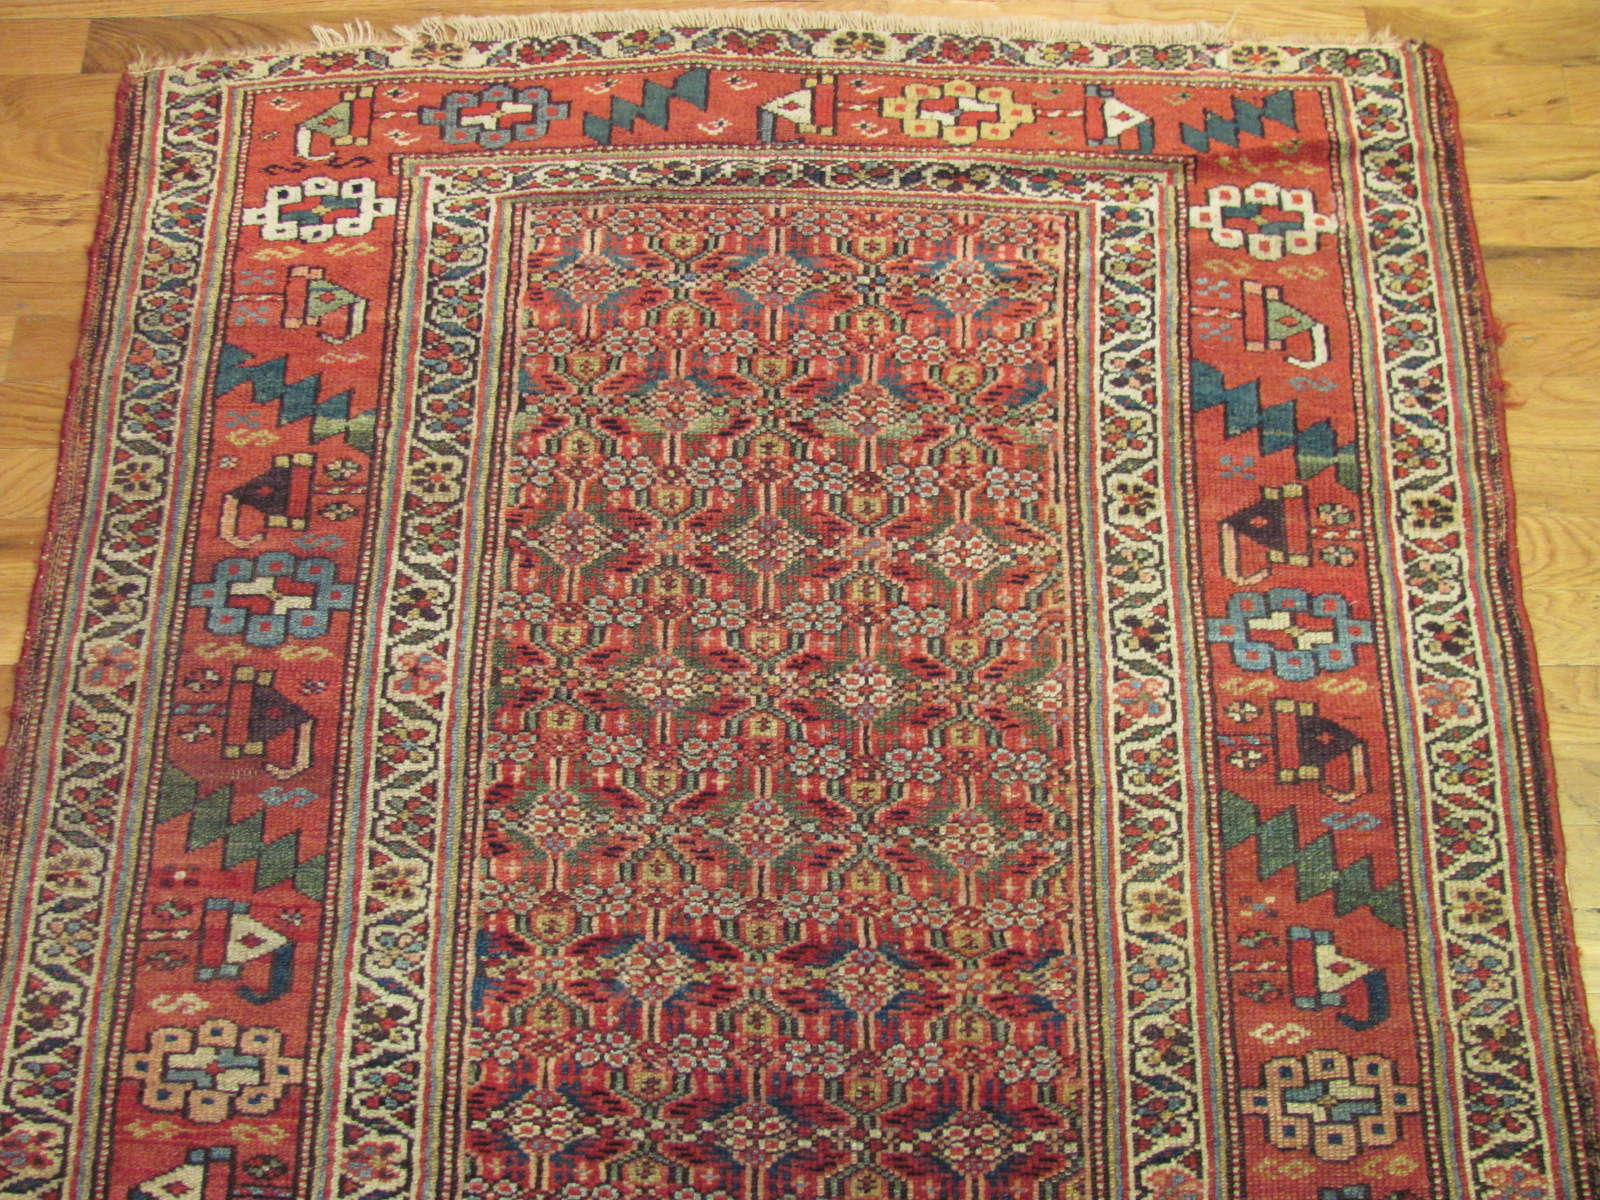 24721 antique persian kurd rug 3,8 x 6 -2